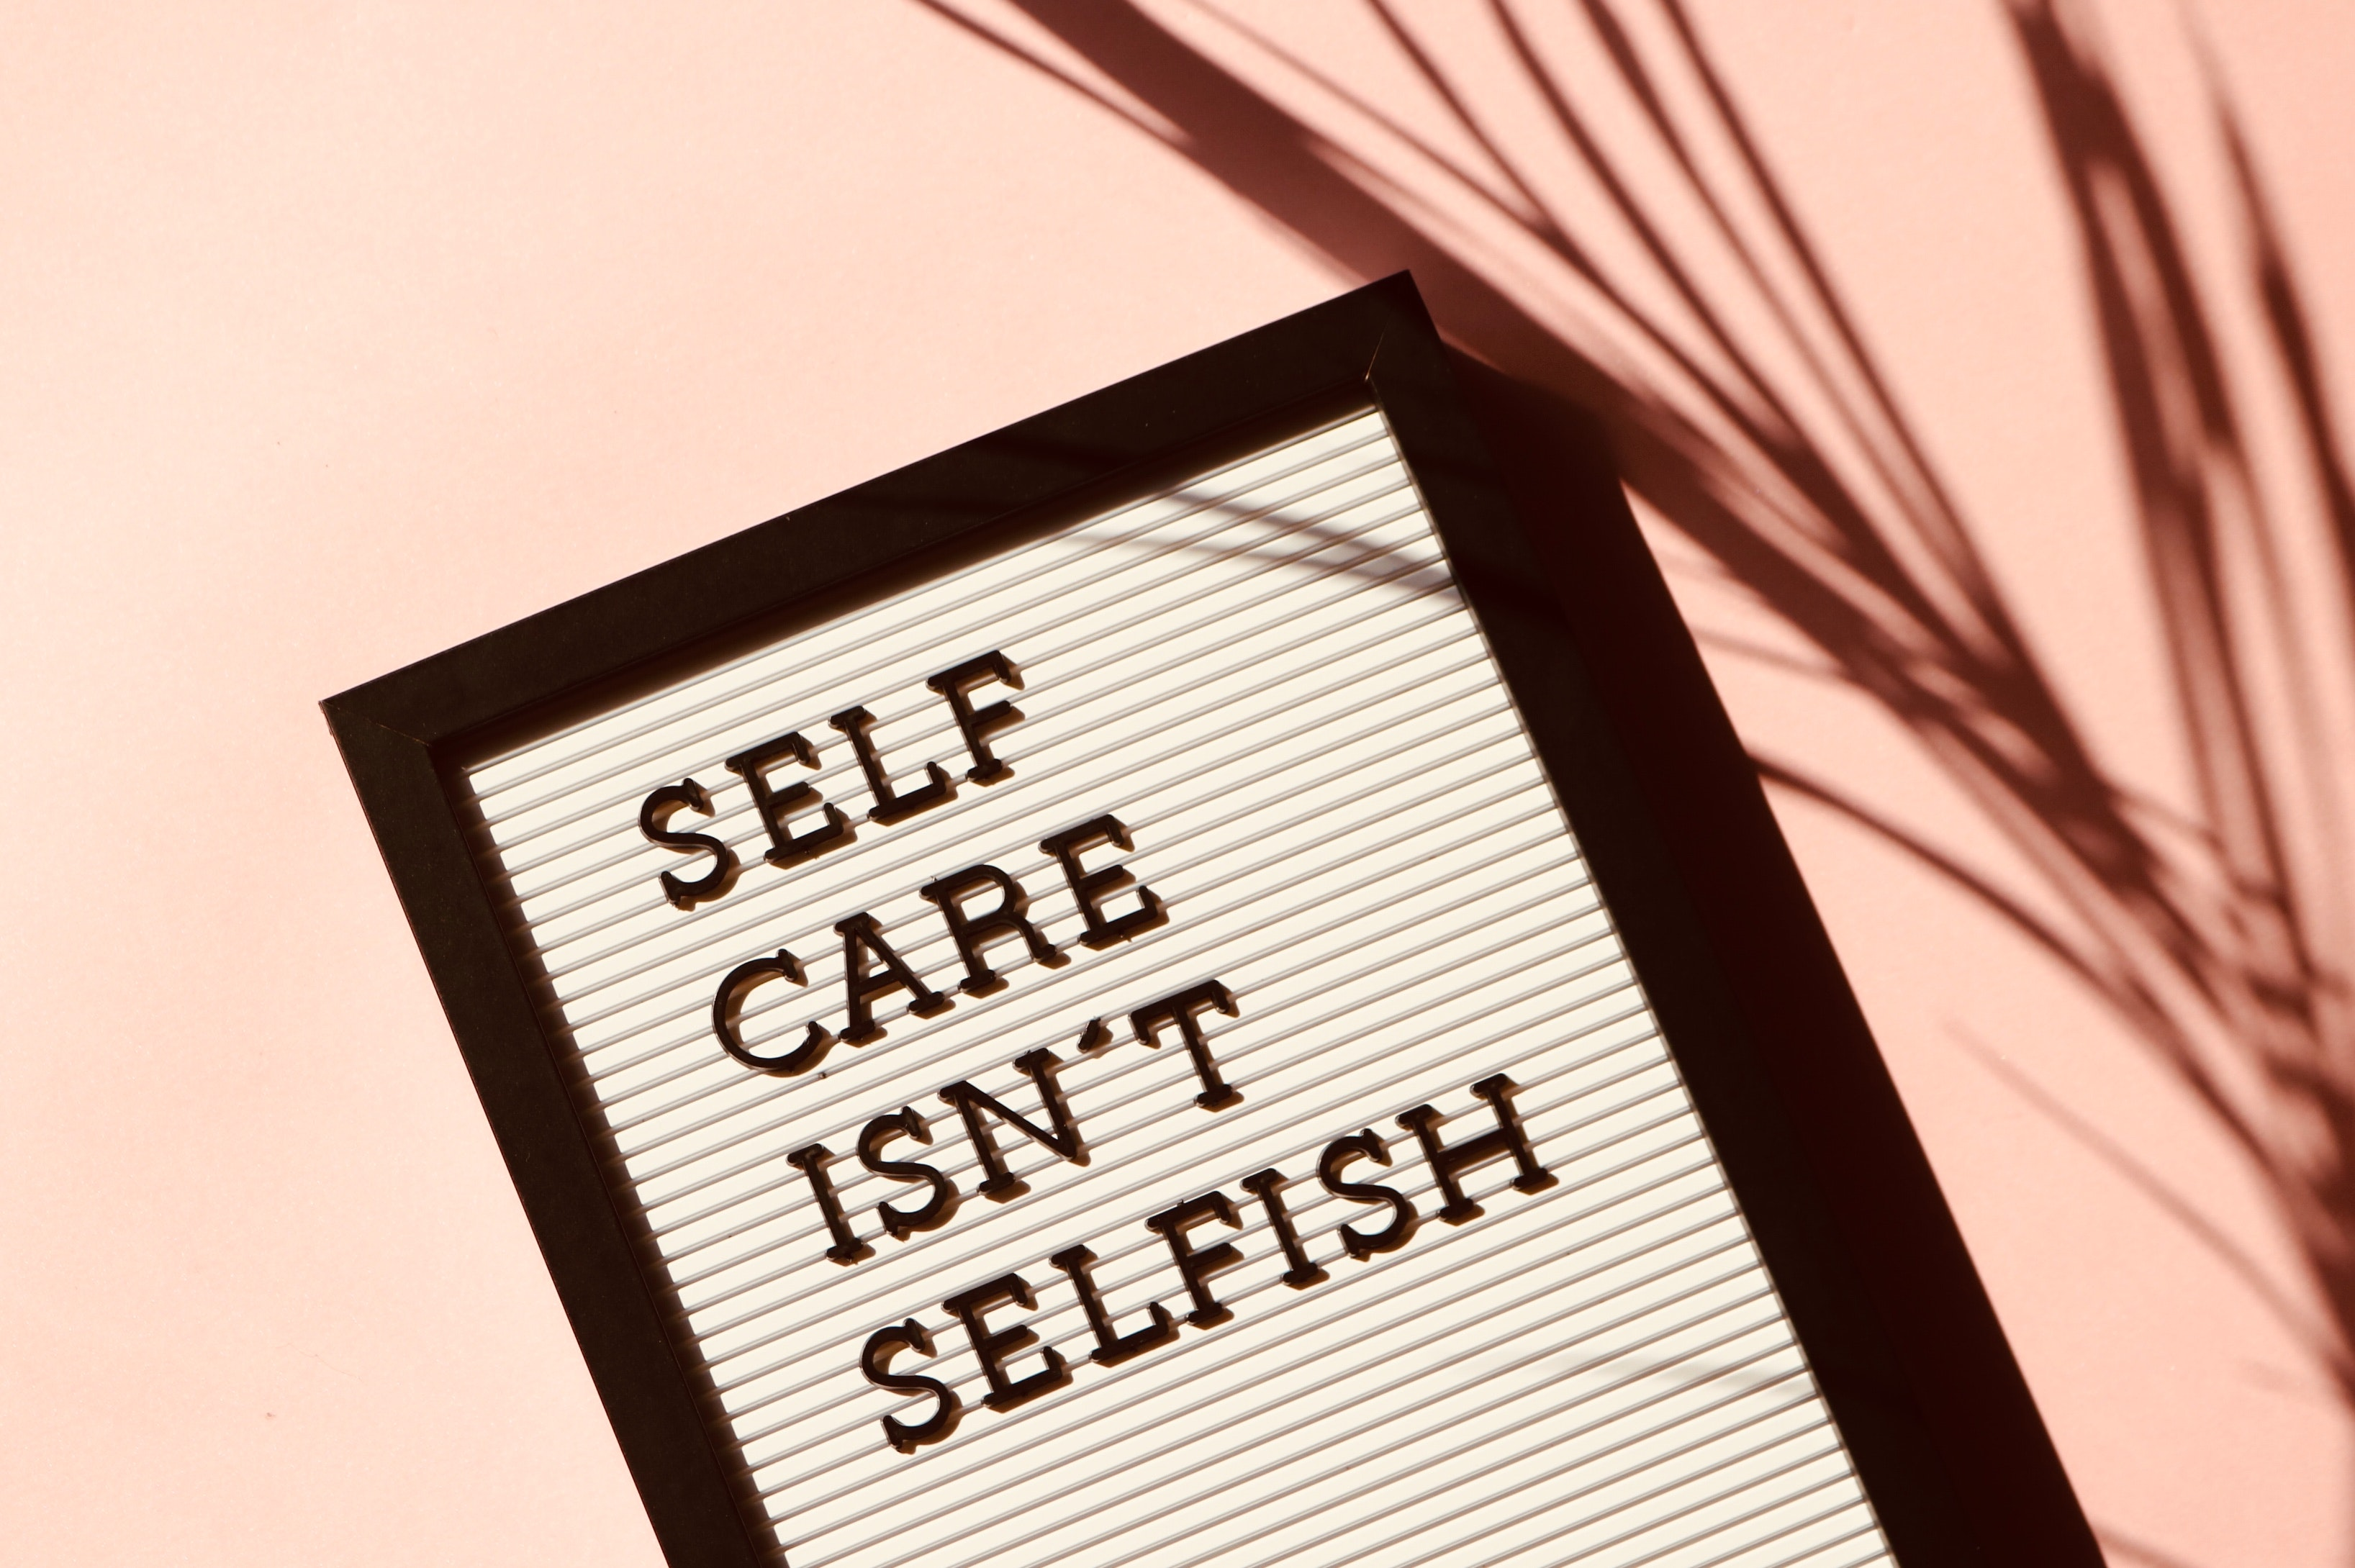 Self care isn't selfish poster